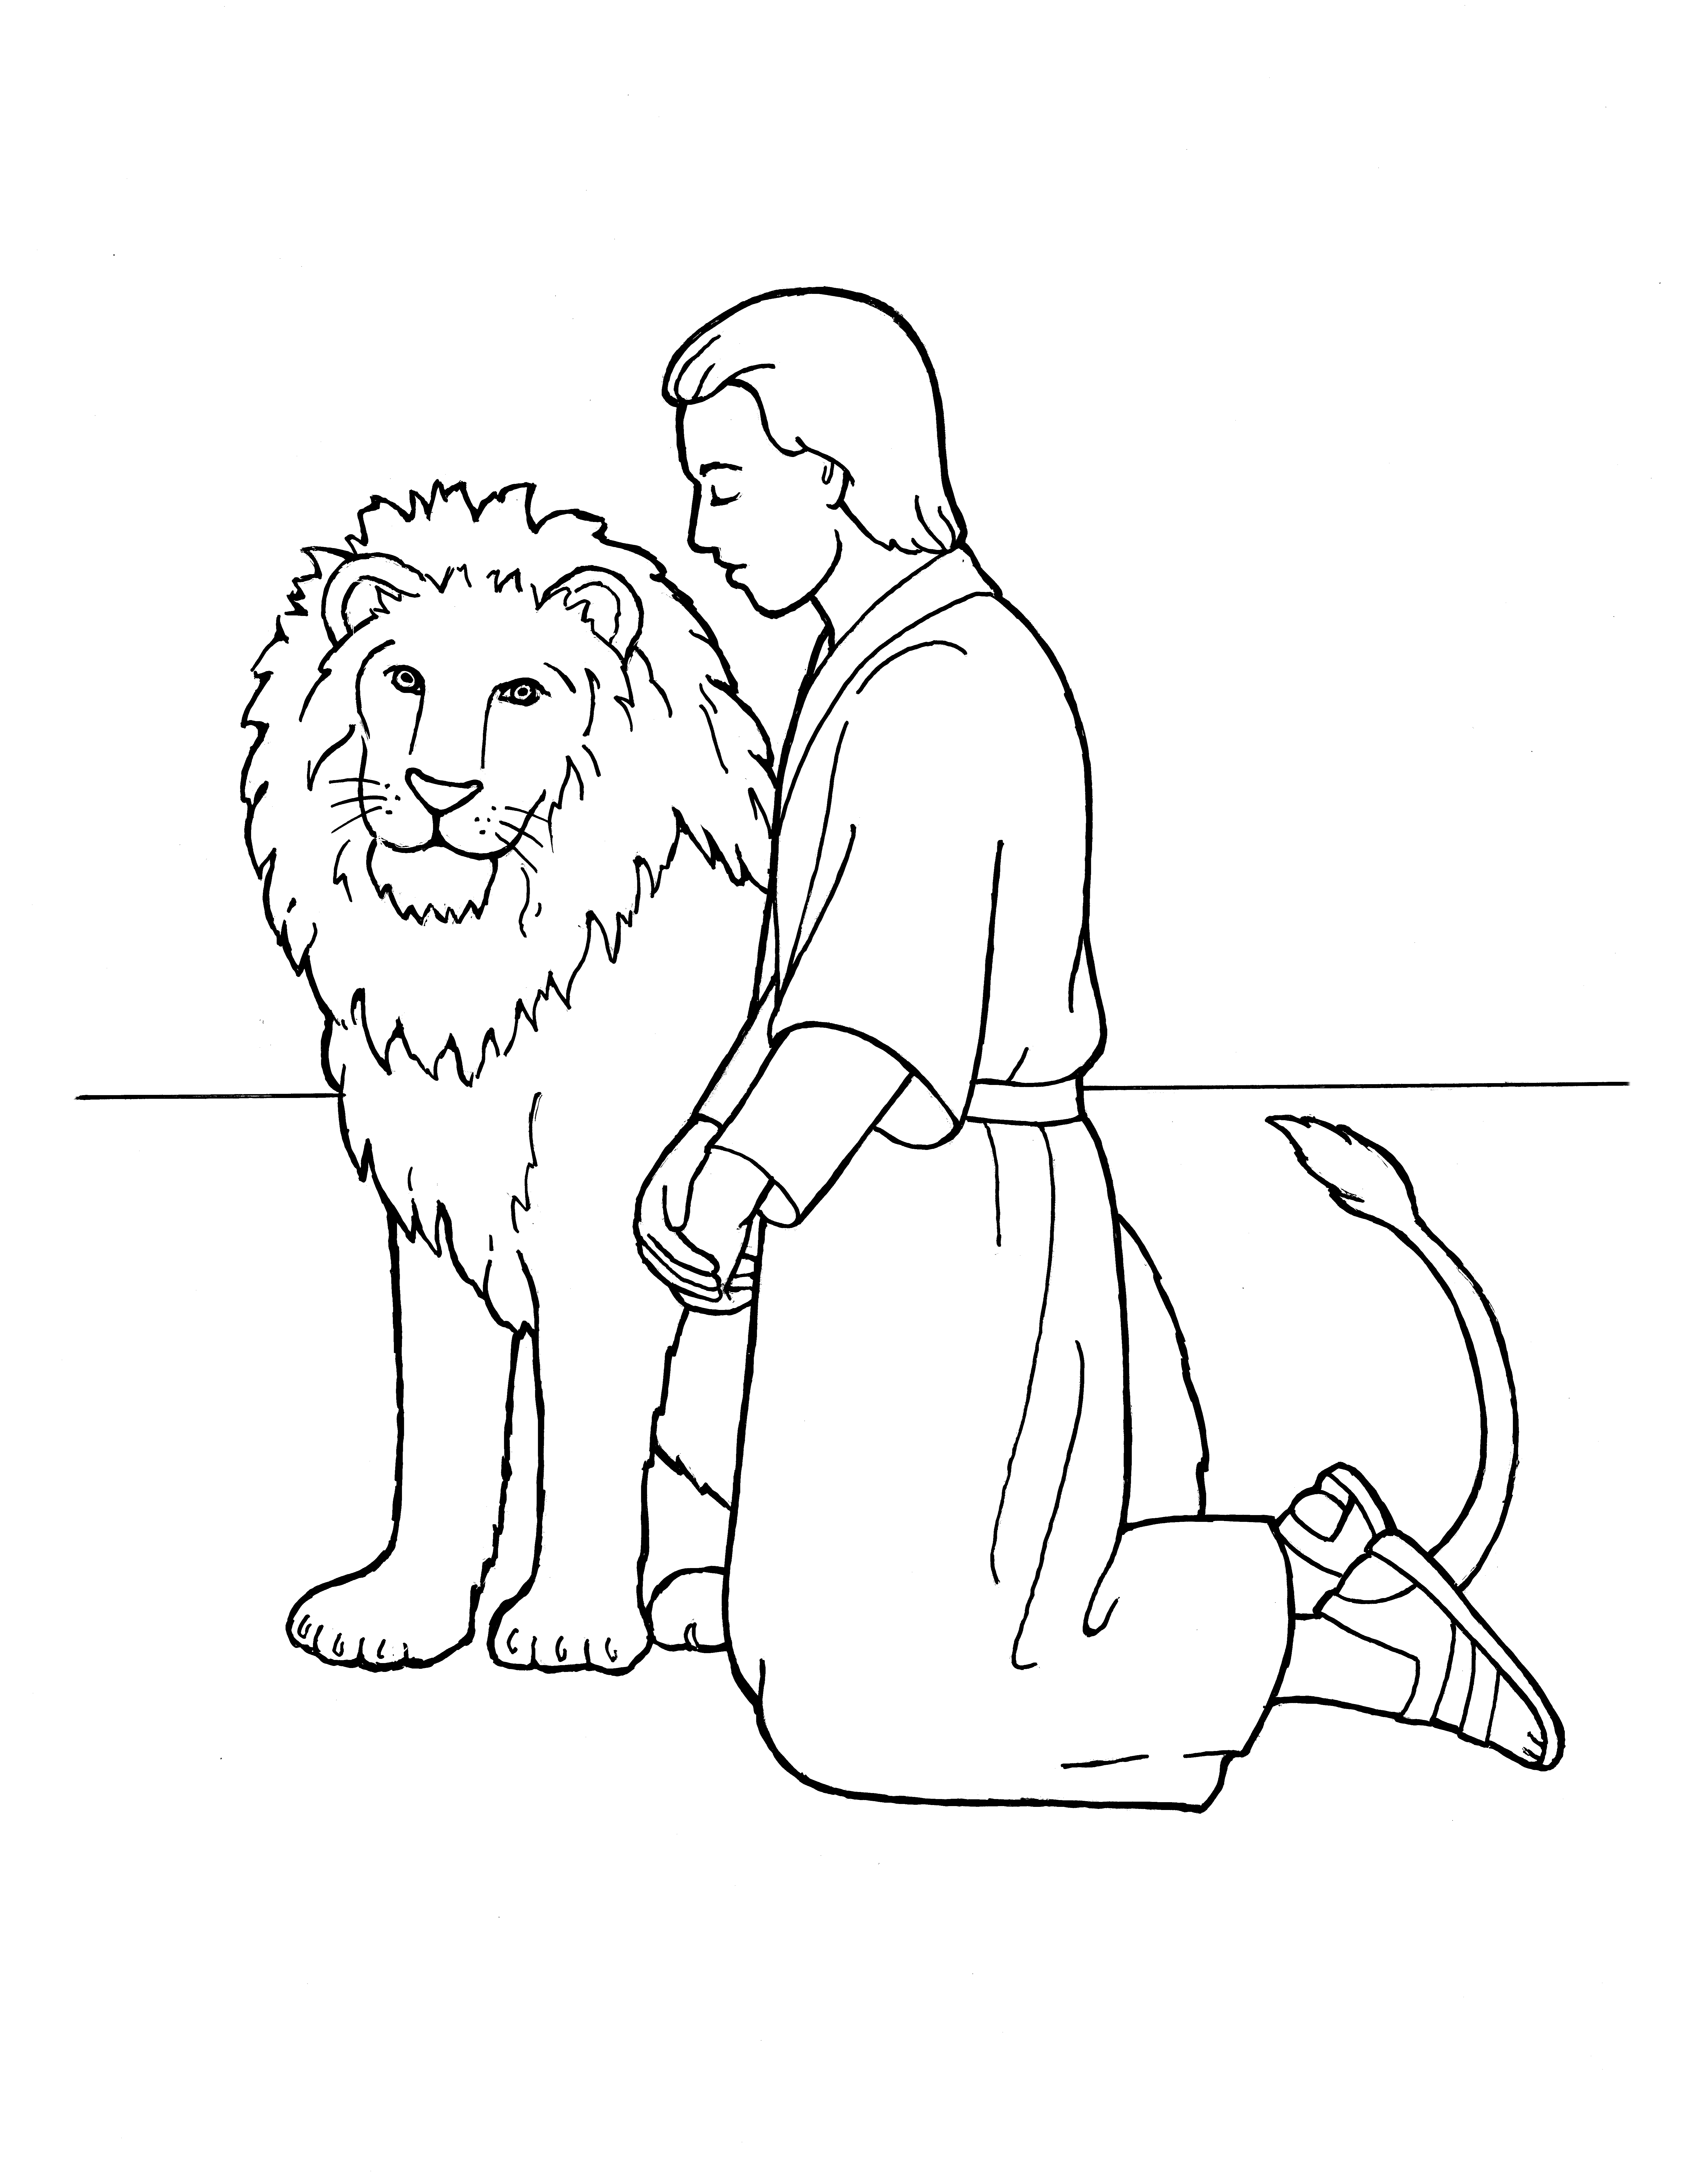 An illustration of Daniel kneeling in prayer beside a lion, from the nursery manual Behold Your Little Ones (2008), page 103.